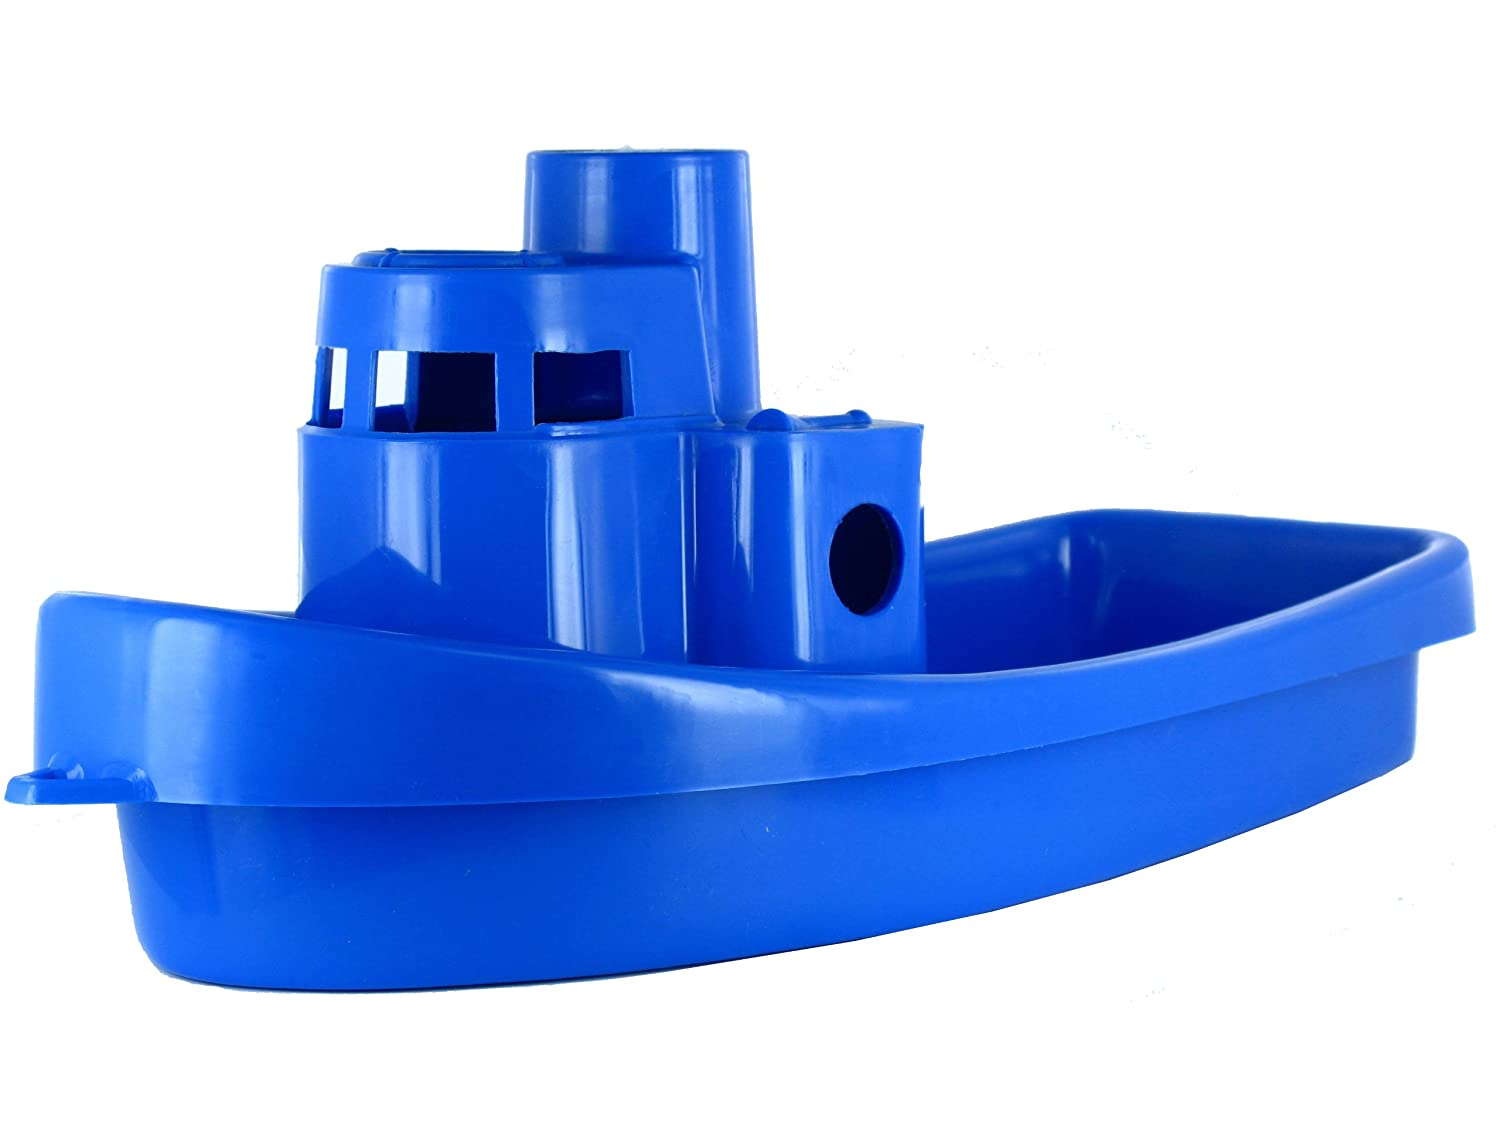 Dantoy Stacking Tug Boat Color: Blue by Dantoy   B004A9YZLC